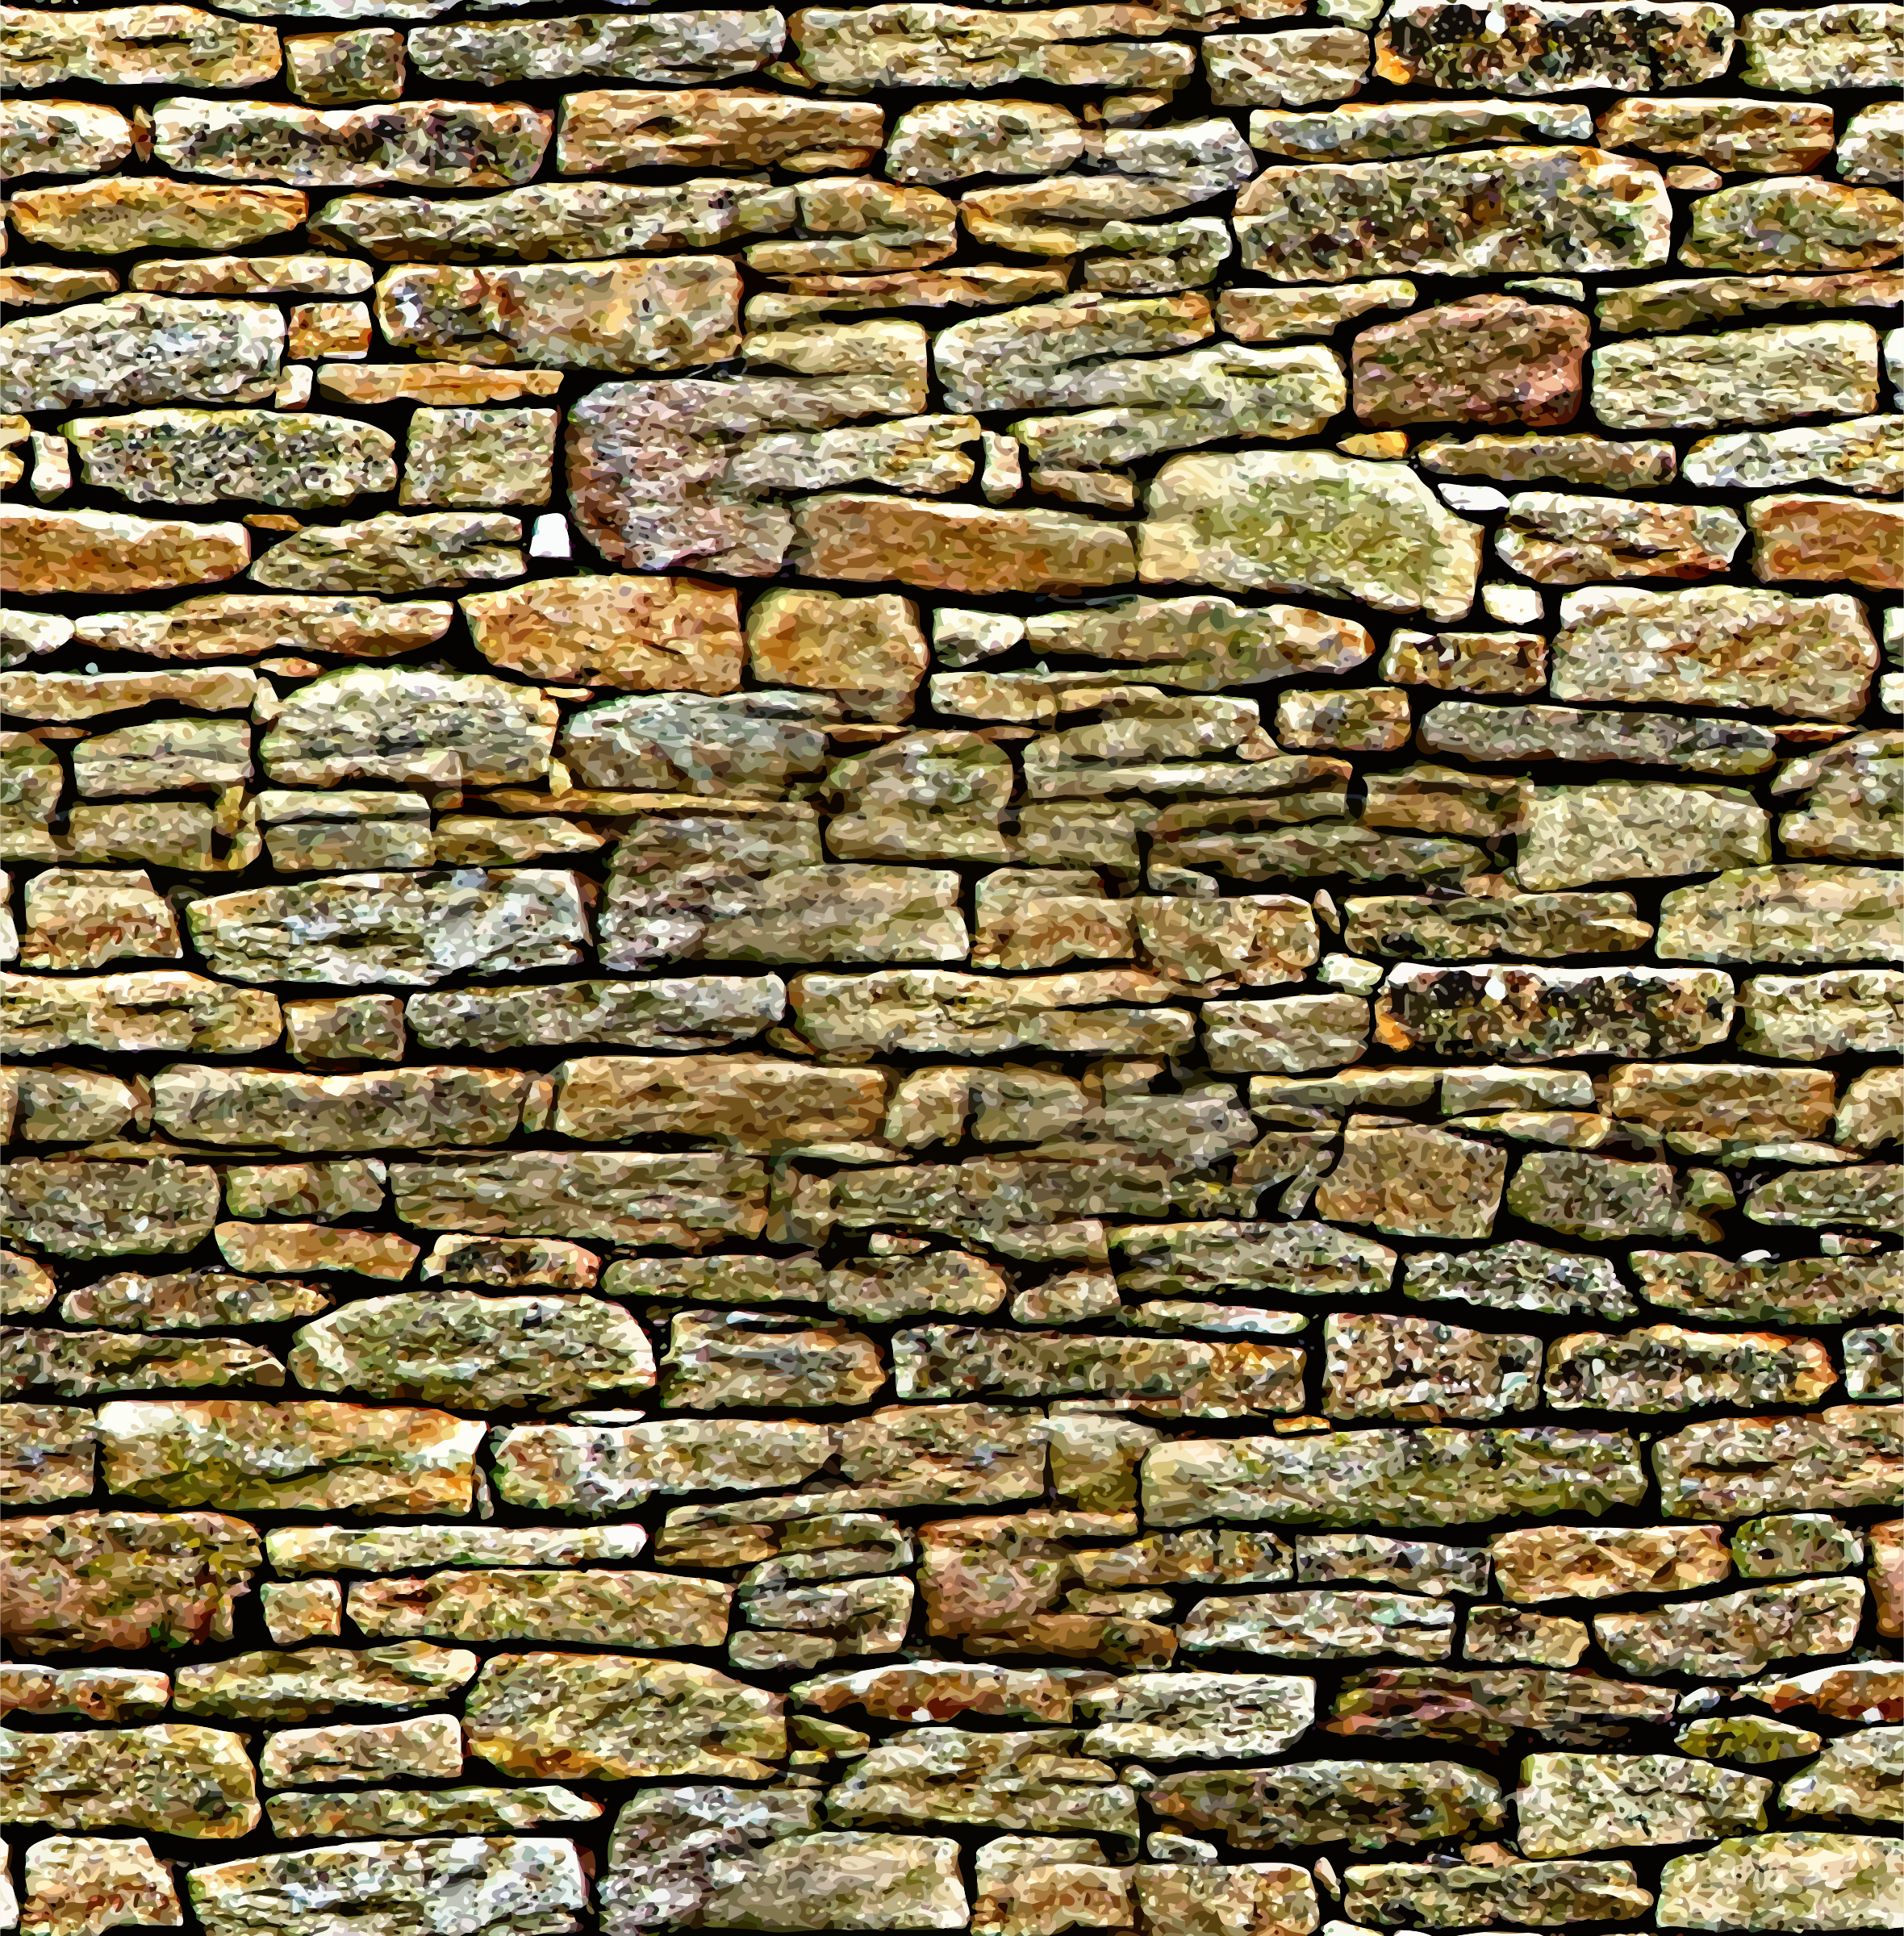 clipart stone wall 14 stone wall clipart black and white stone wall texture clipart